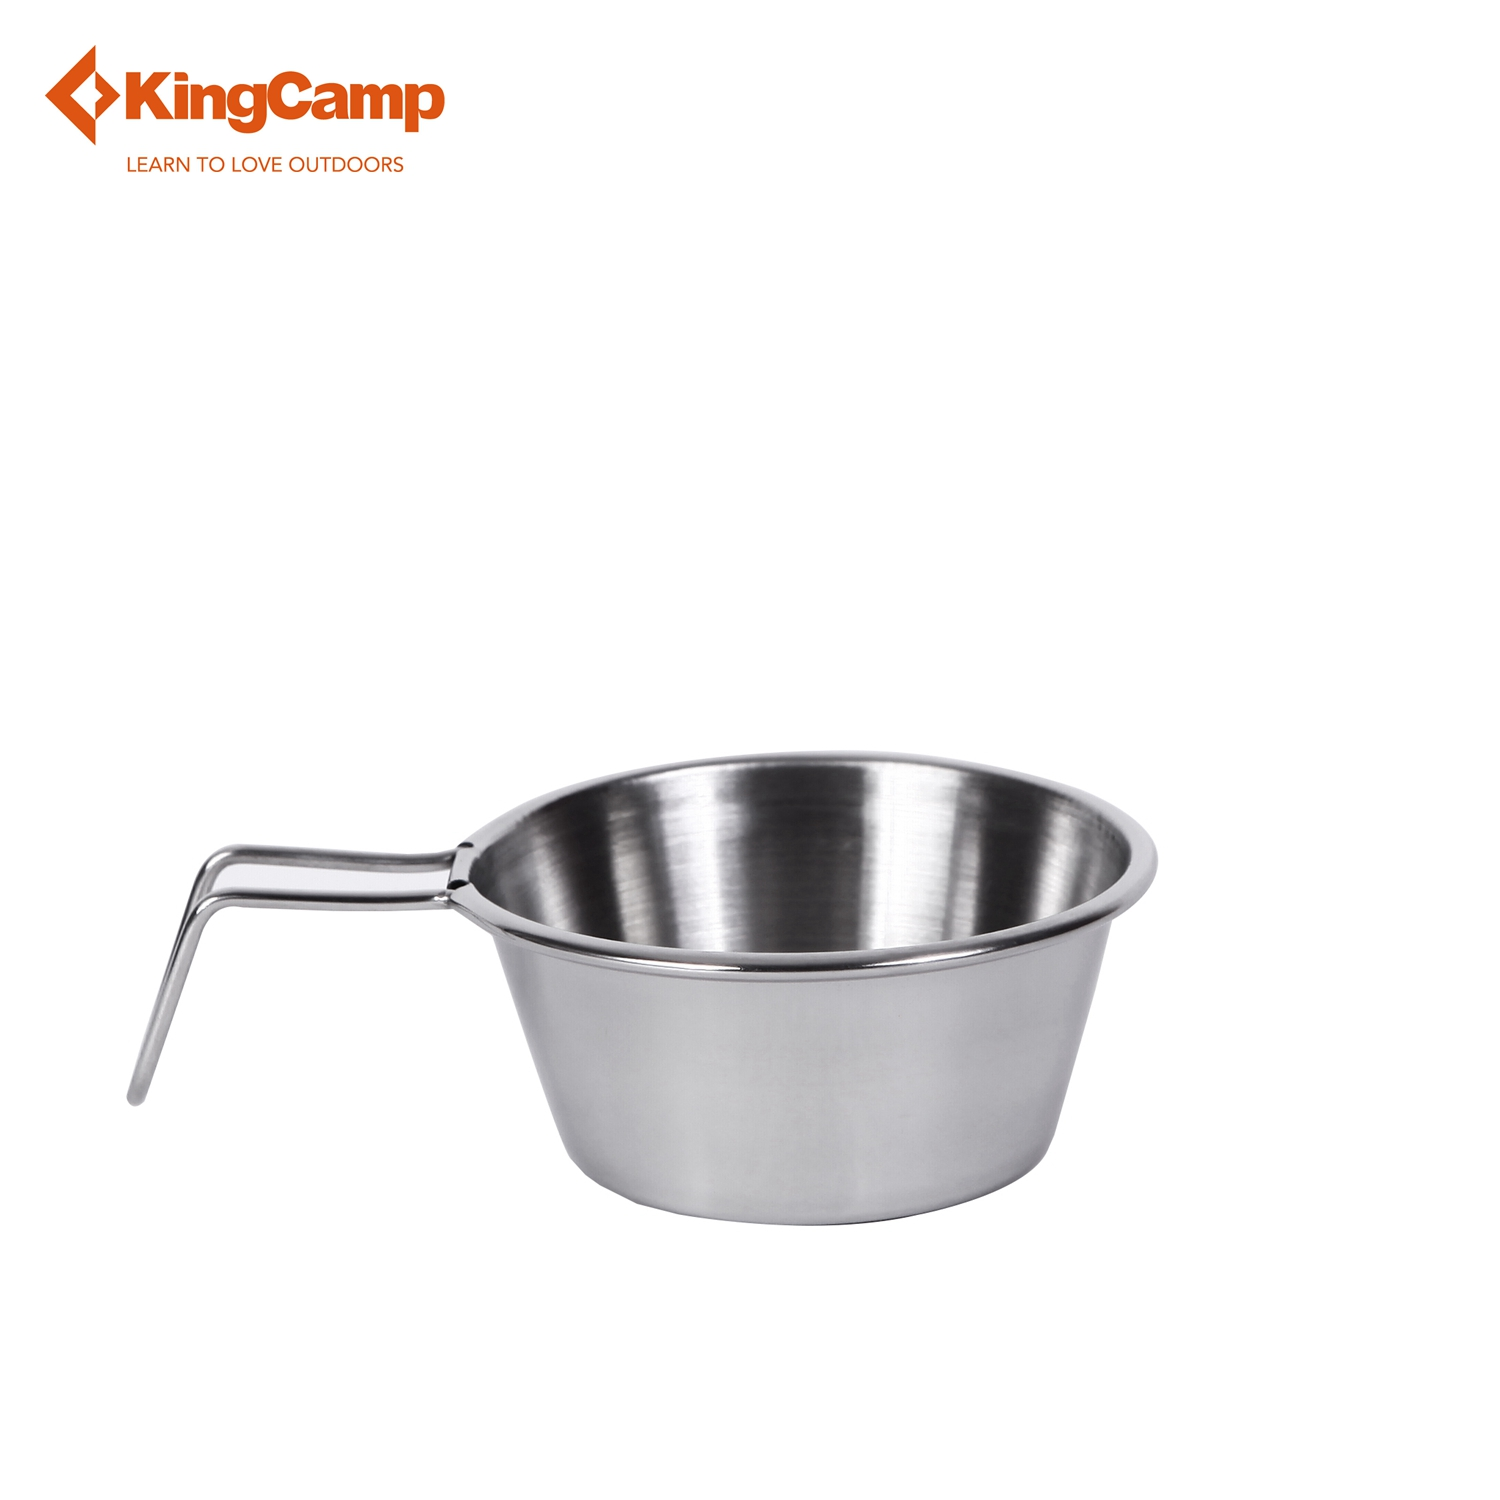 Kingcamp 7pcs Portable Stainless Steel Cookware Set For Camping Hiking Includes Pot Frypan Plates Bowels Carry Bag Dinner Set Outdoor Tablewares Camping & Hiking